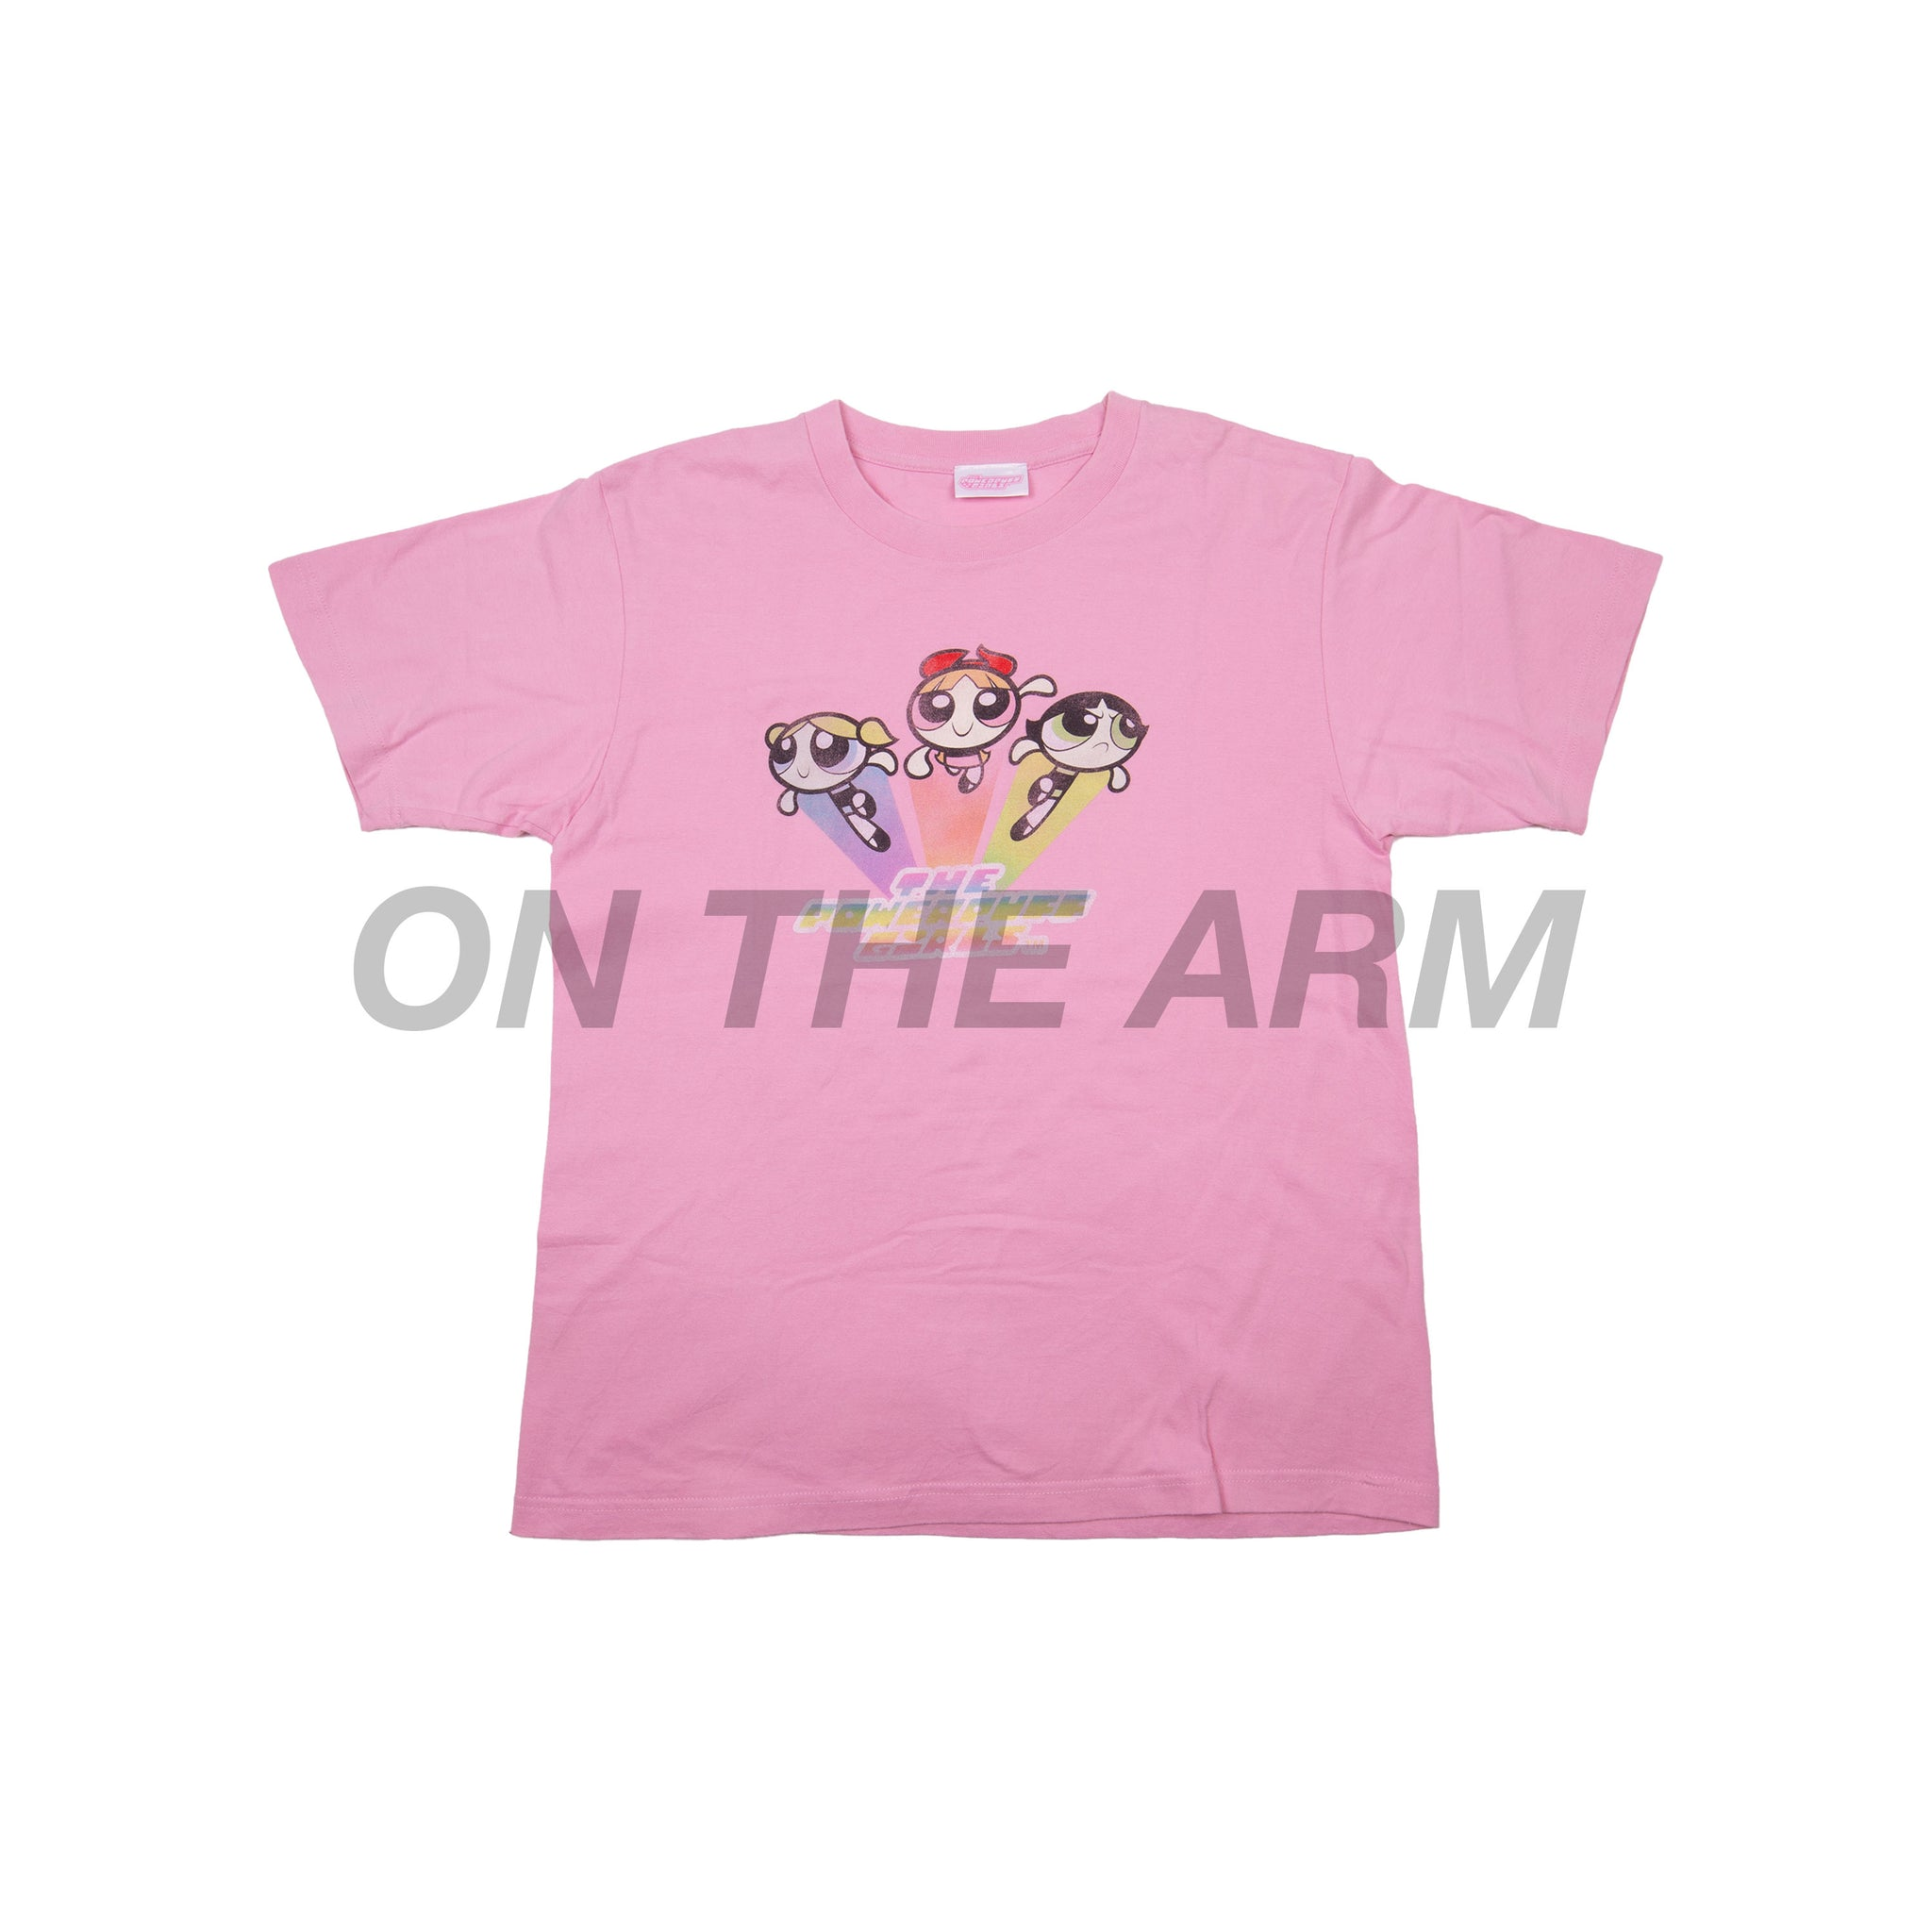 Vintage Pink Powerpuff Girls Tee